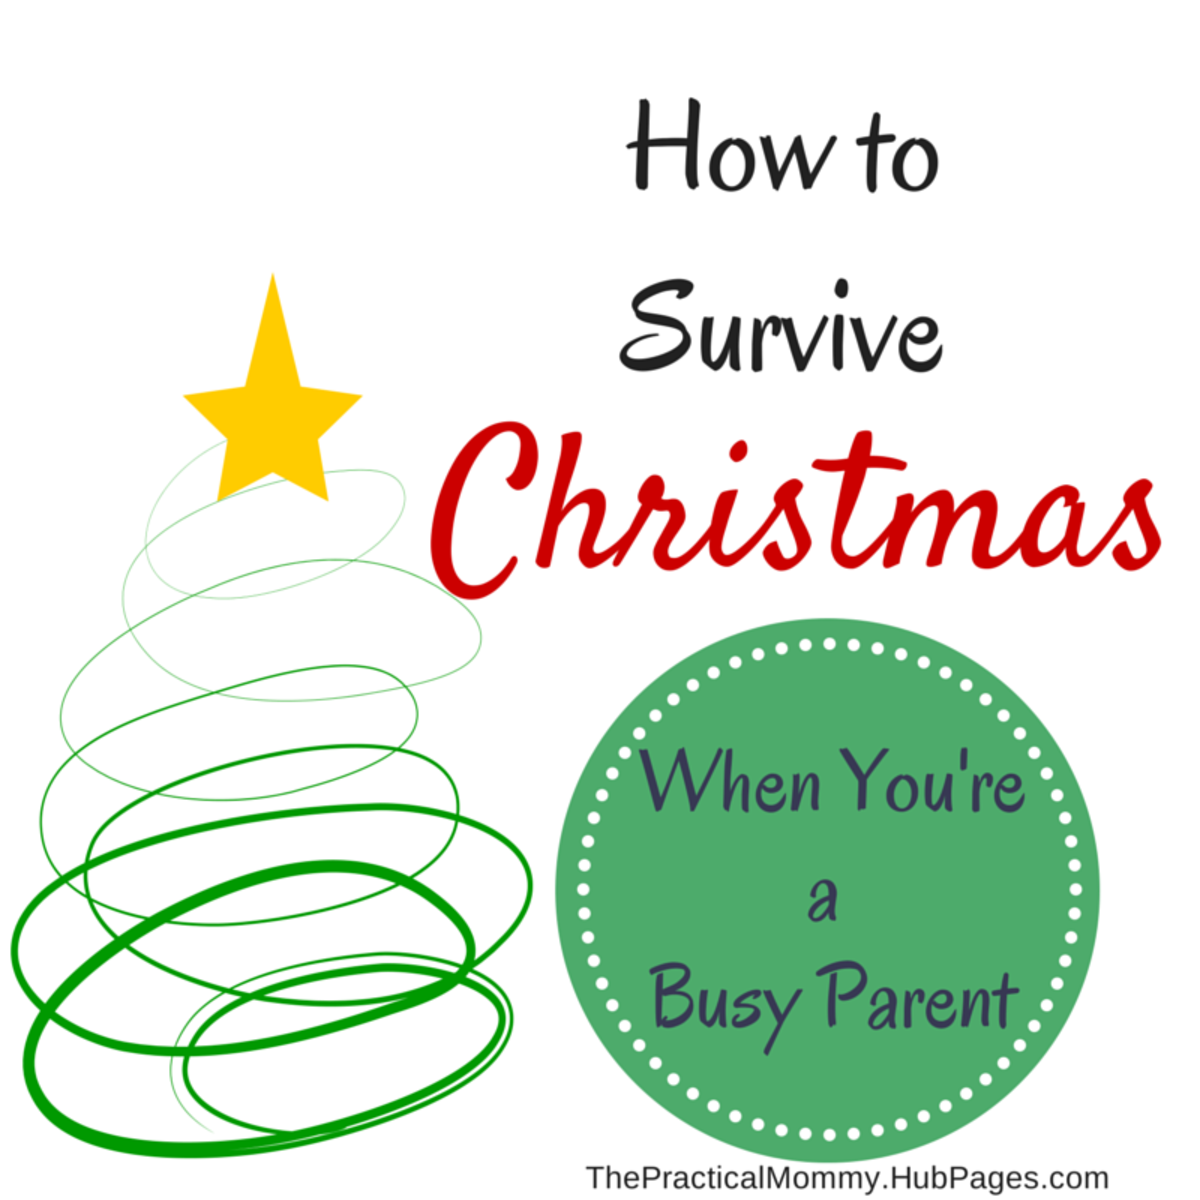 How to Survive Christmas When You're a Busy Parent